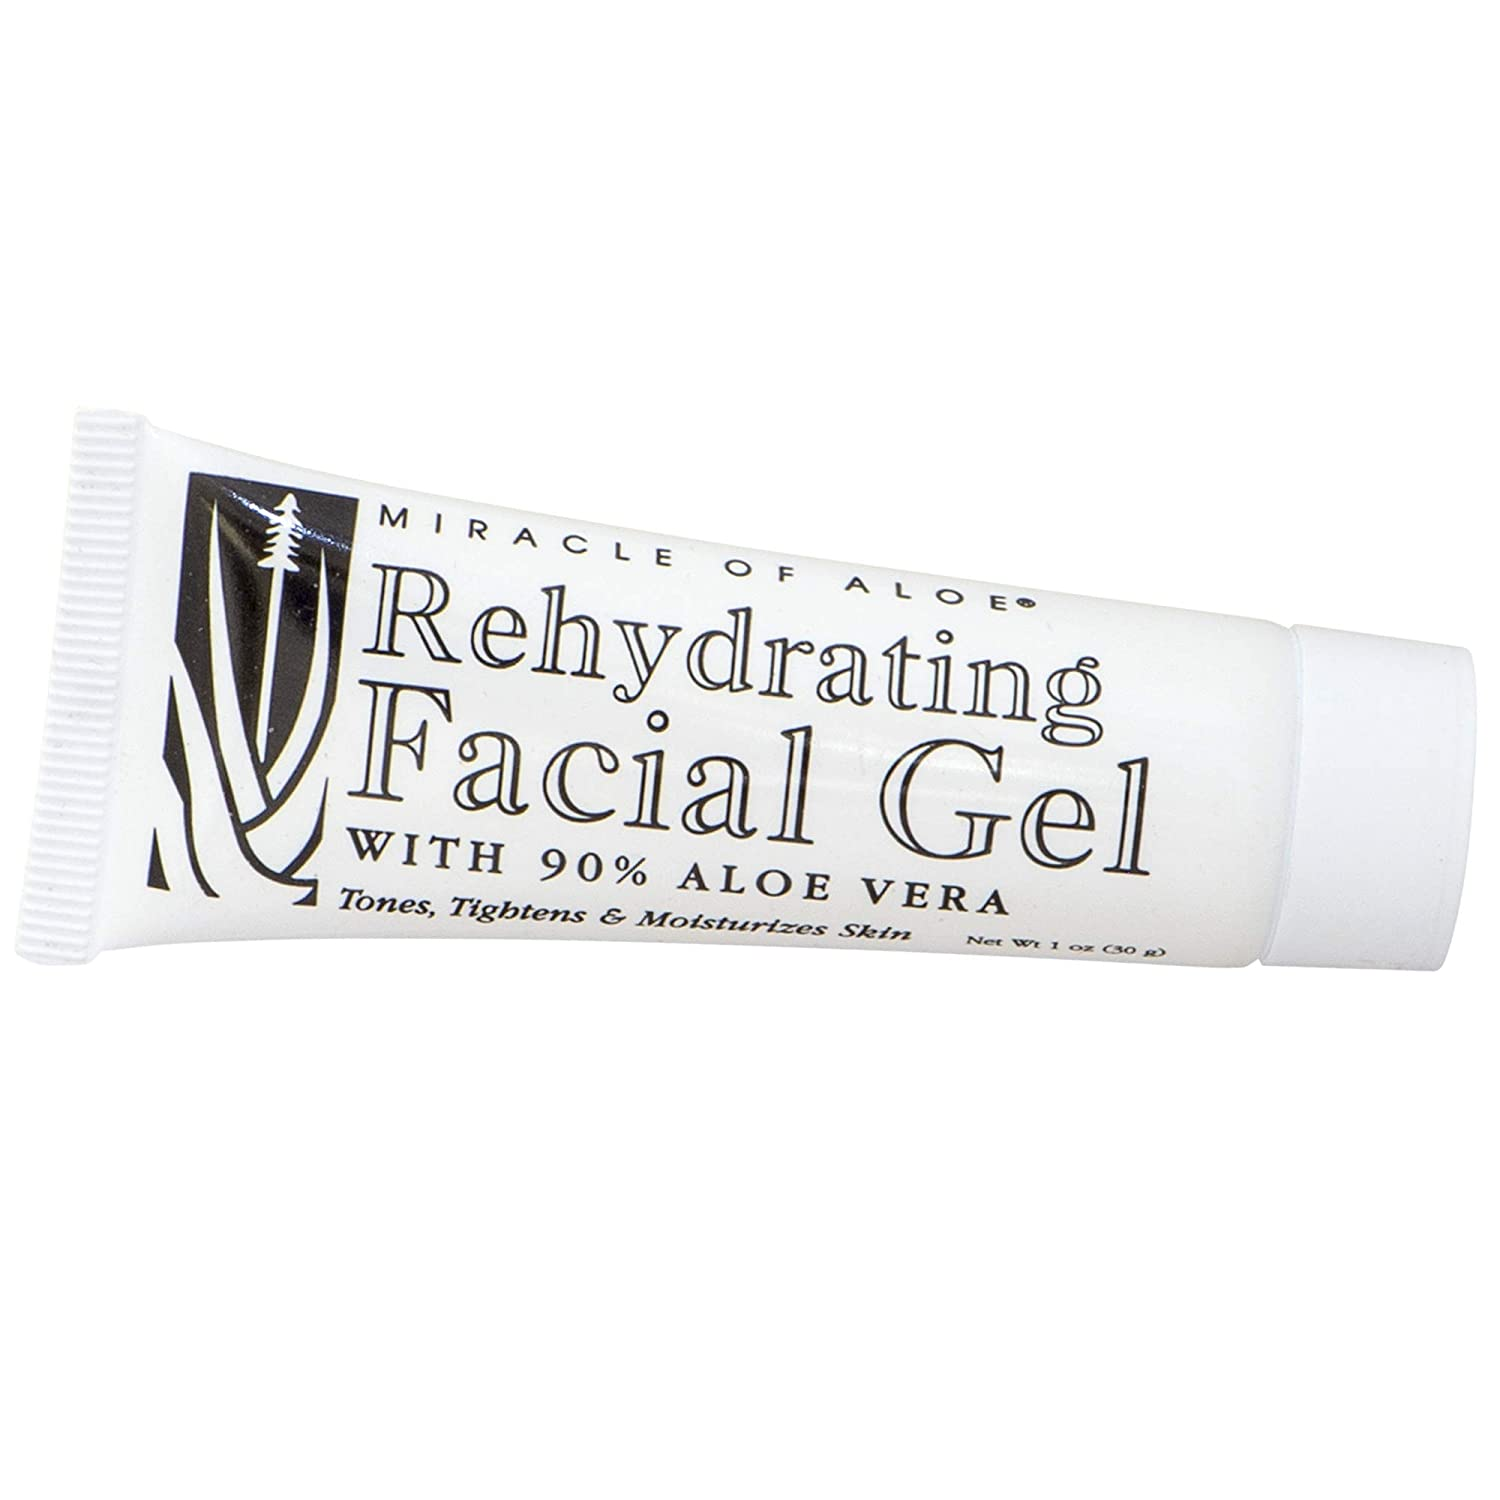 Rehydrating Facial Gel with 90% UltraAloe, 1 ounce tube